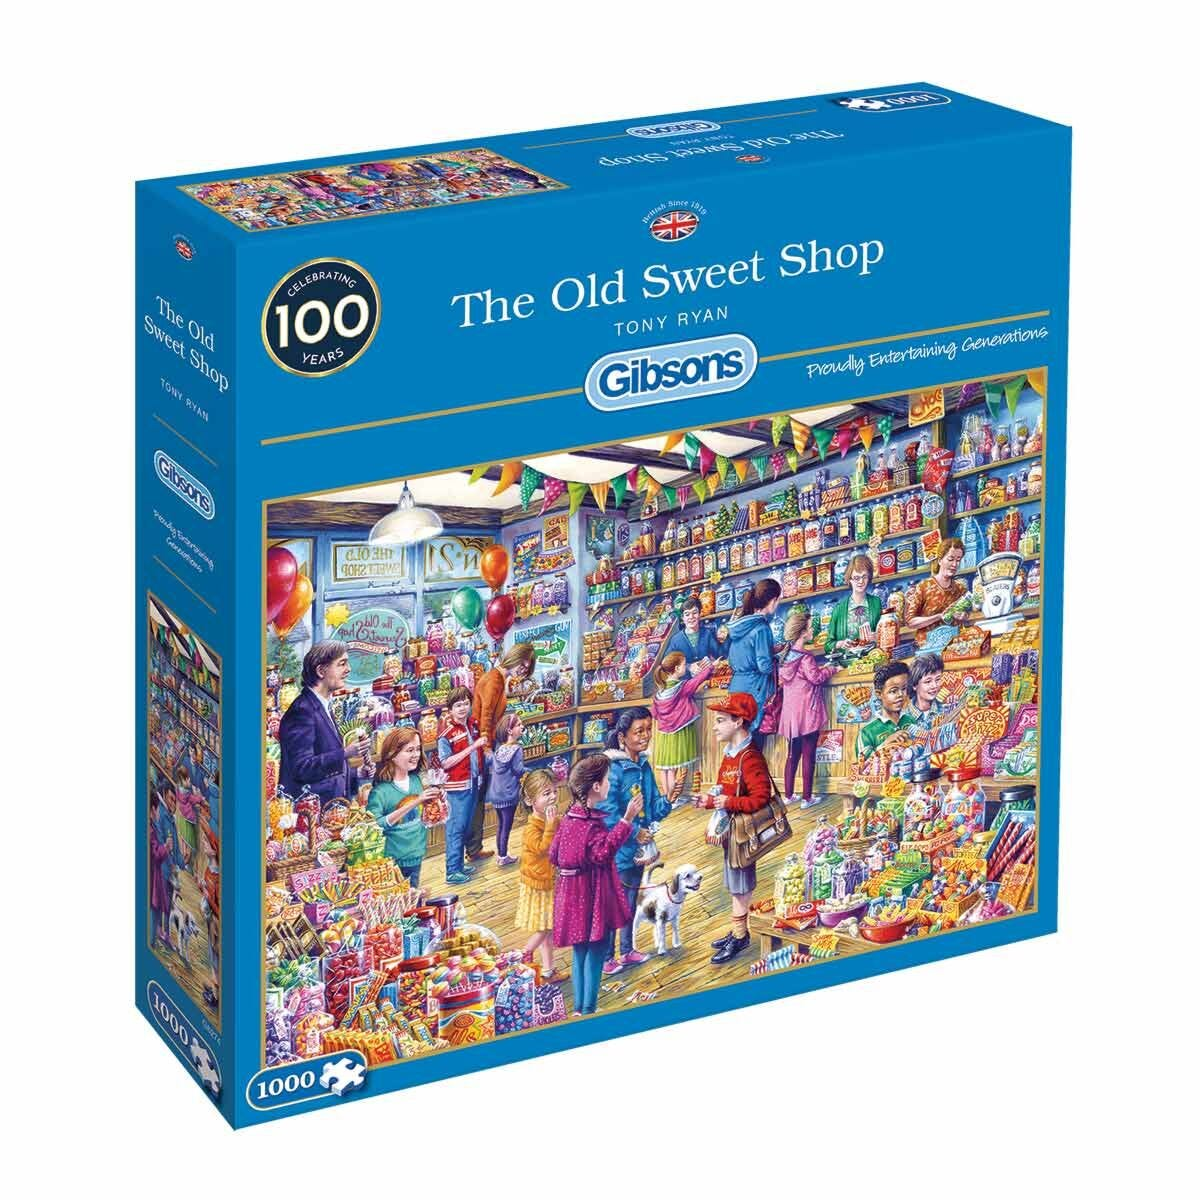 Gibsons The Old Sweet Shop 1000 Piece Jigsaw Puzzle